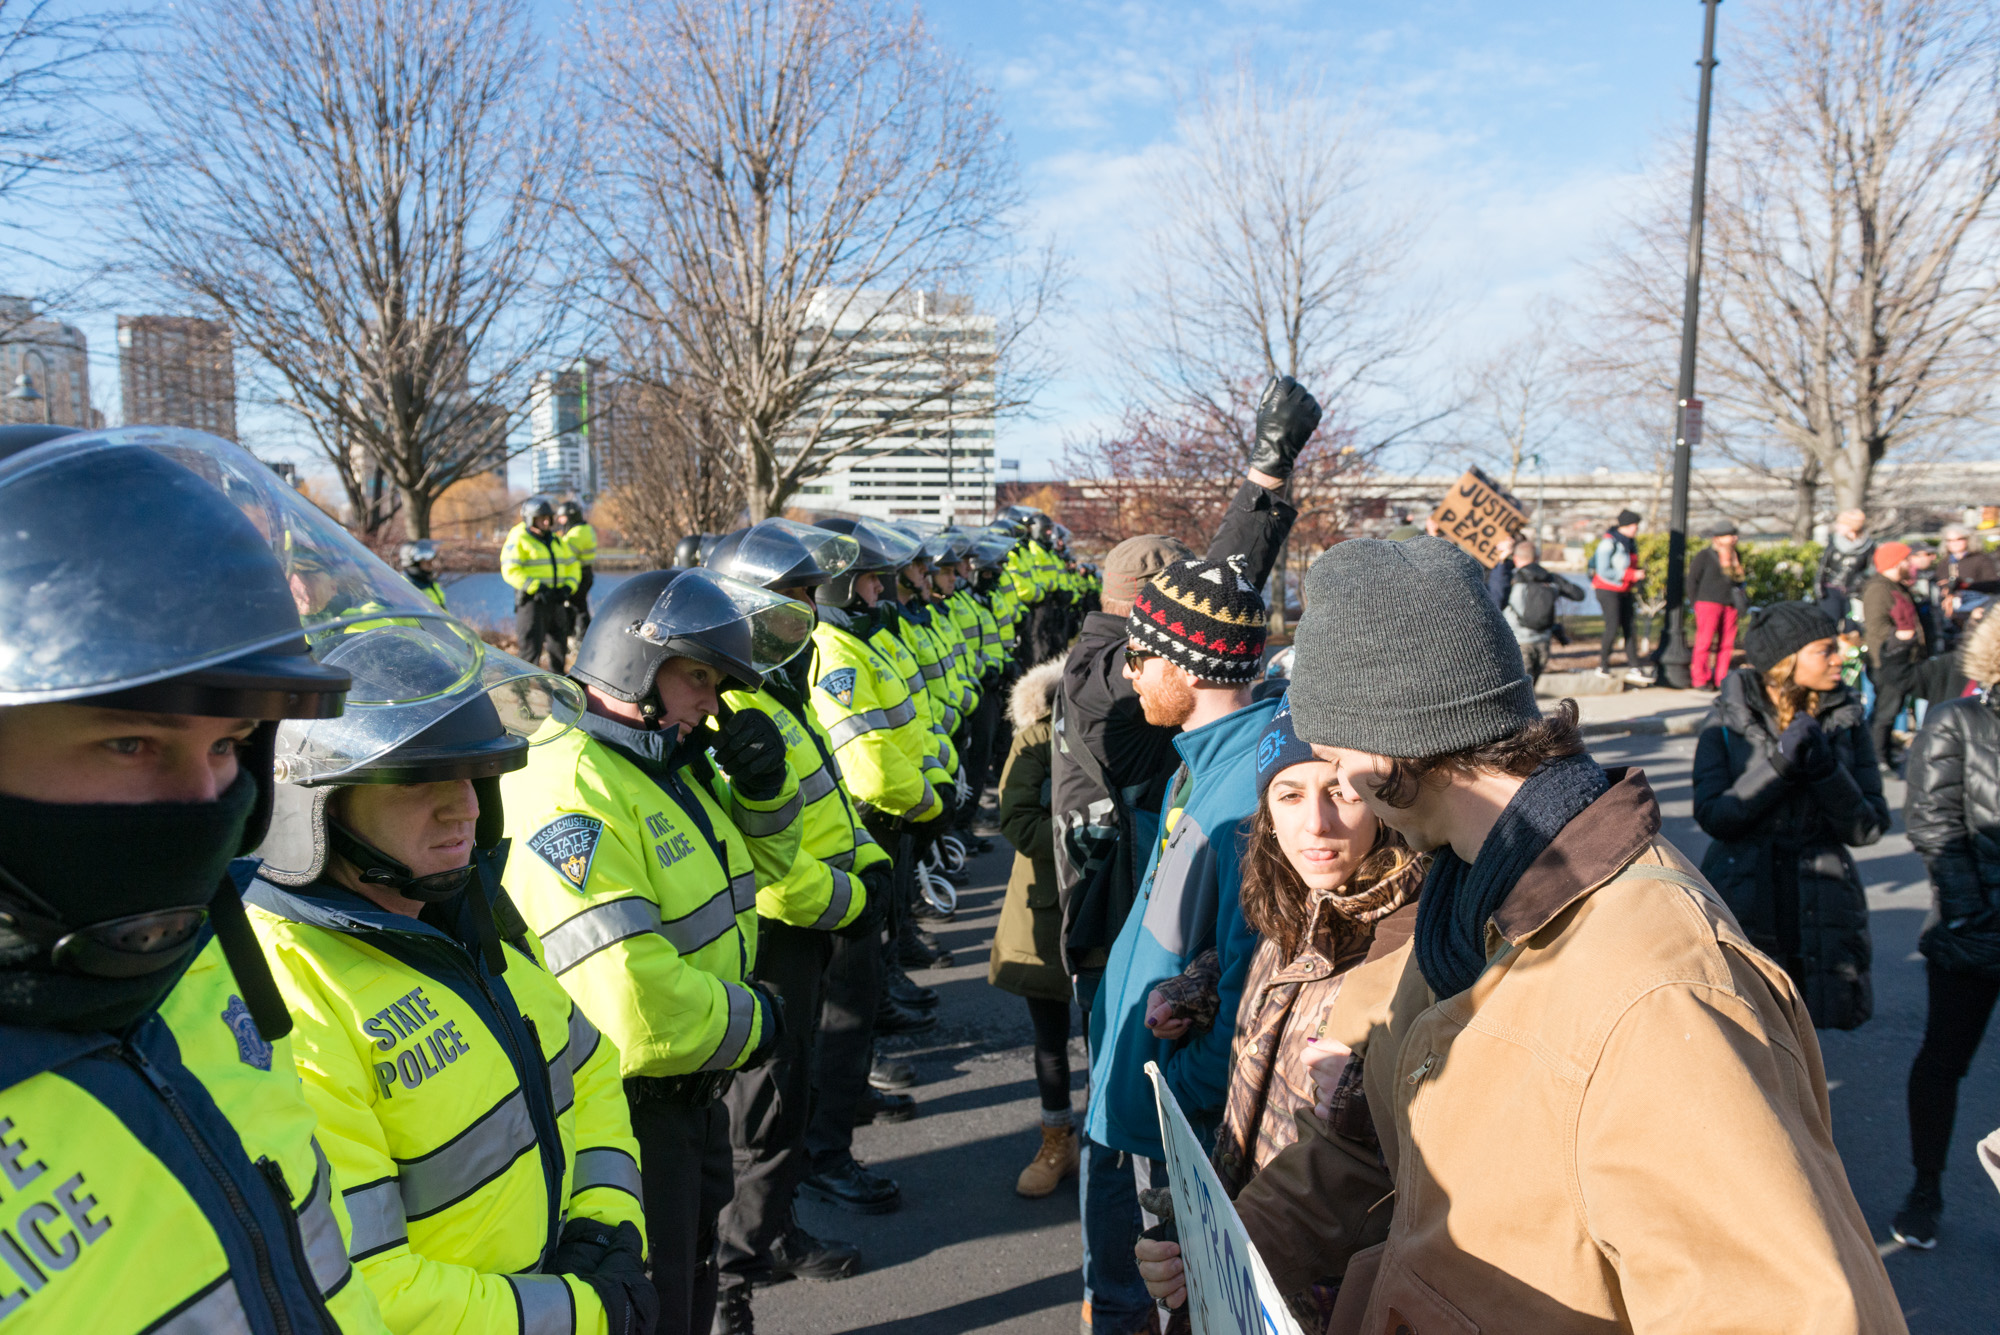 Protesters filled Nashua St. face to face with the police arrayed in front of them